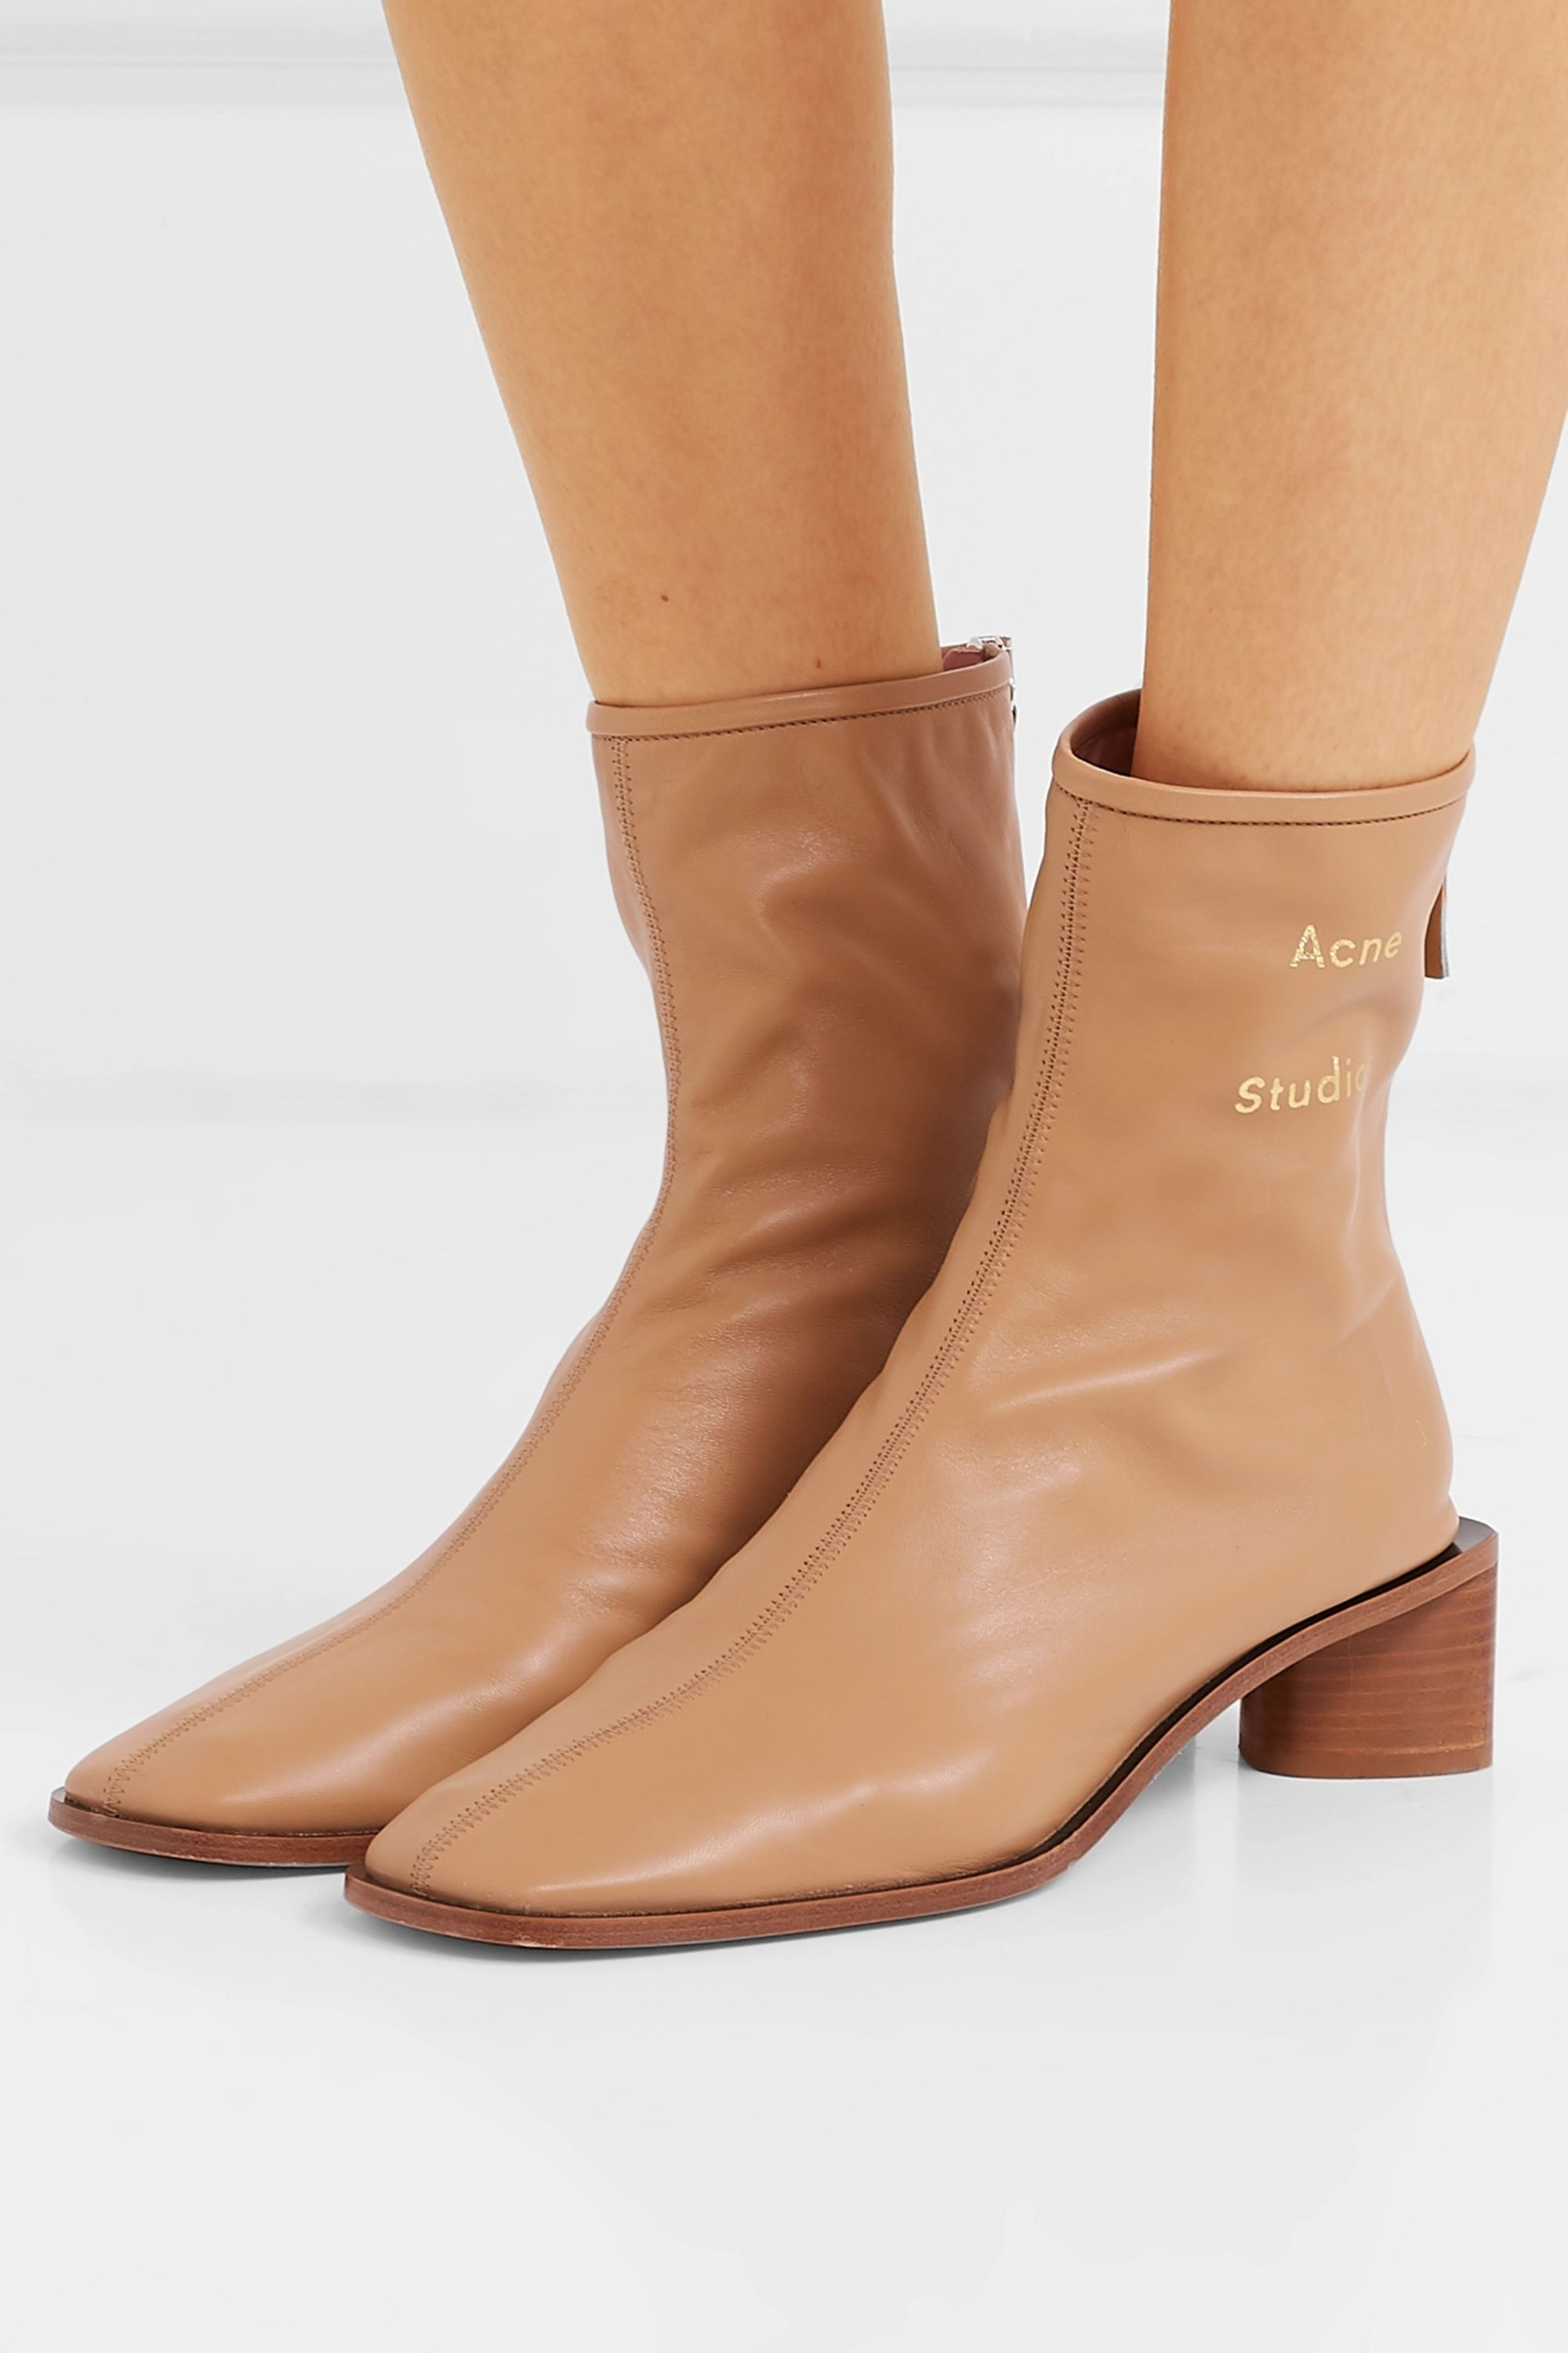 Acne Studios Bertine leather ankle boots